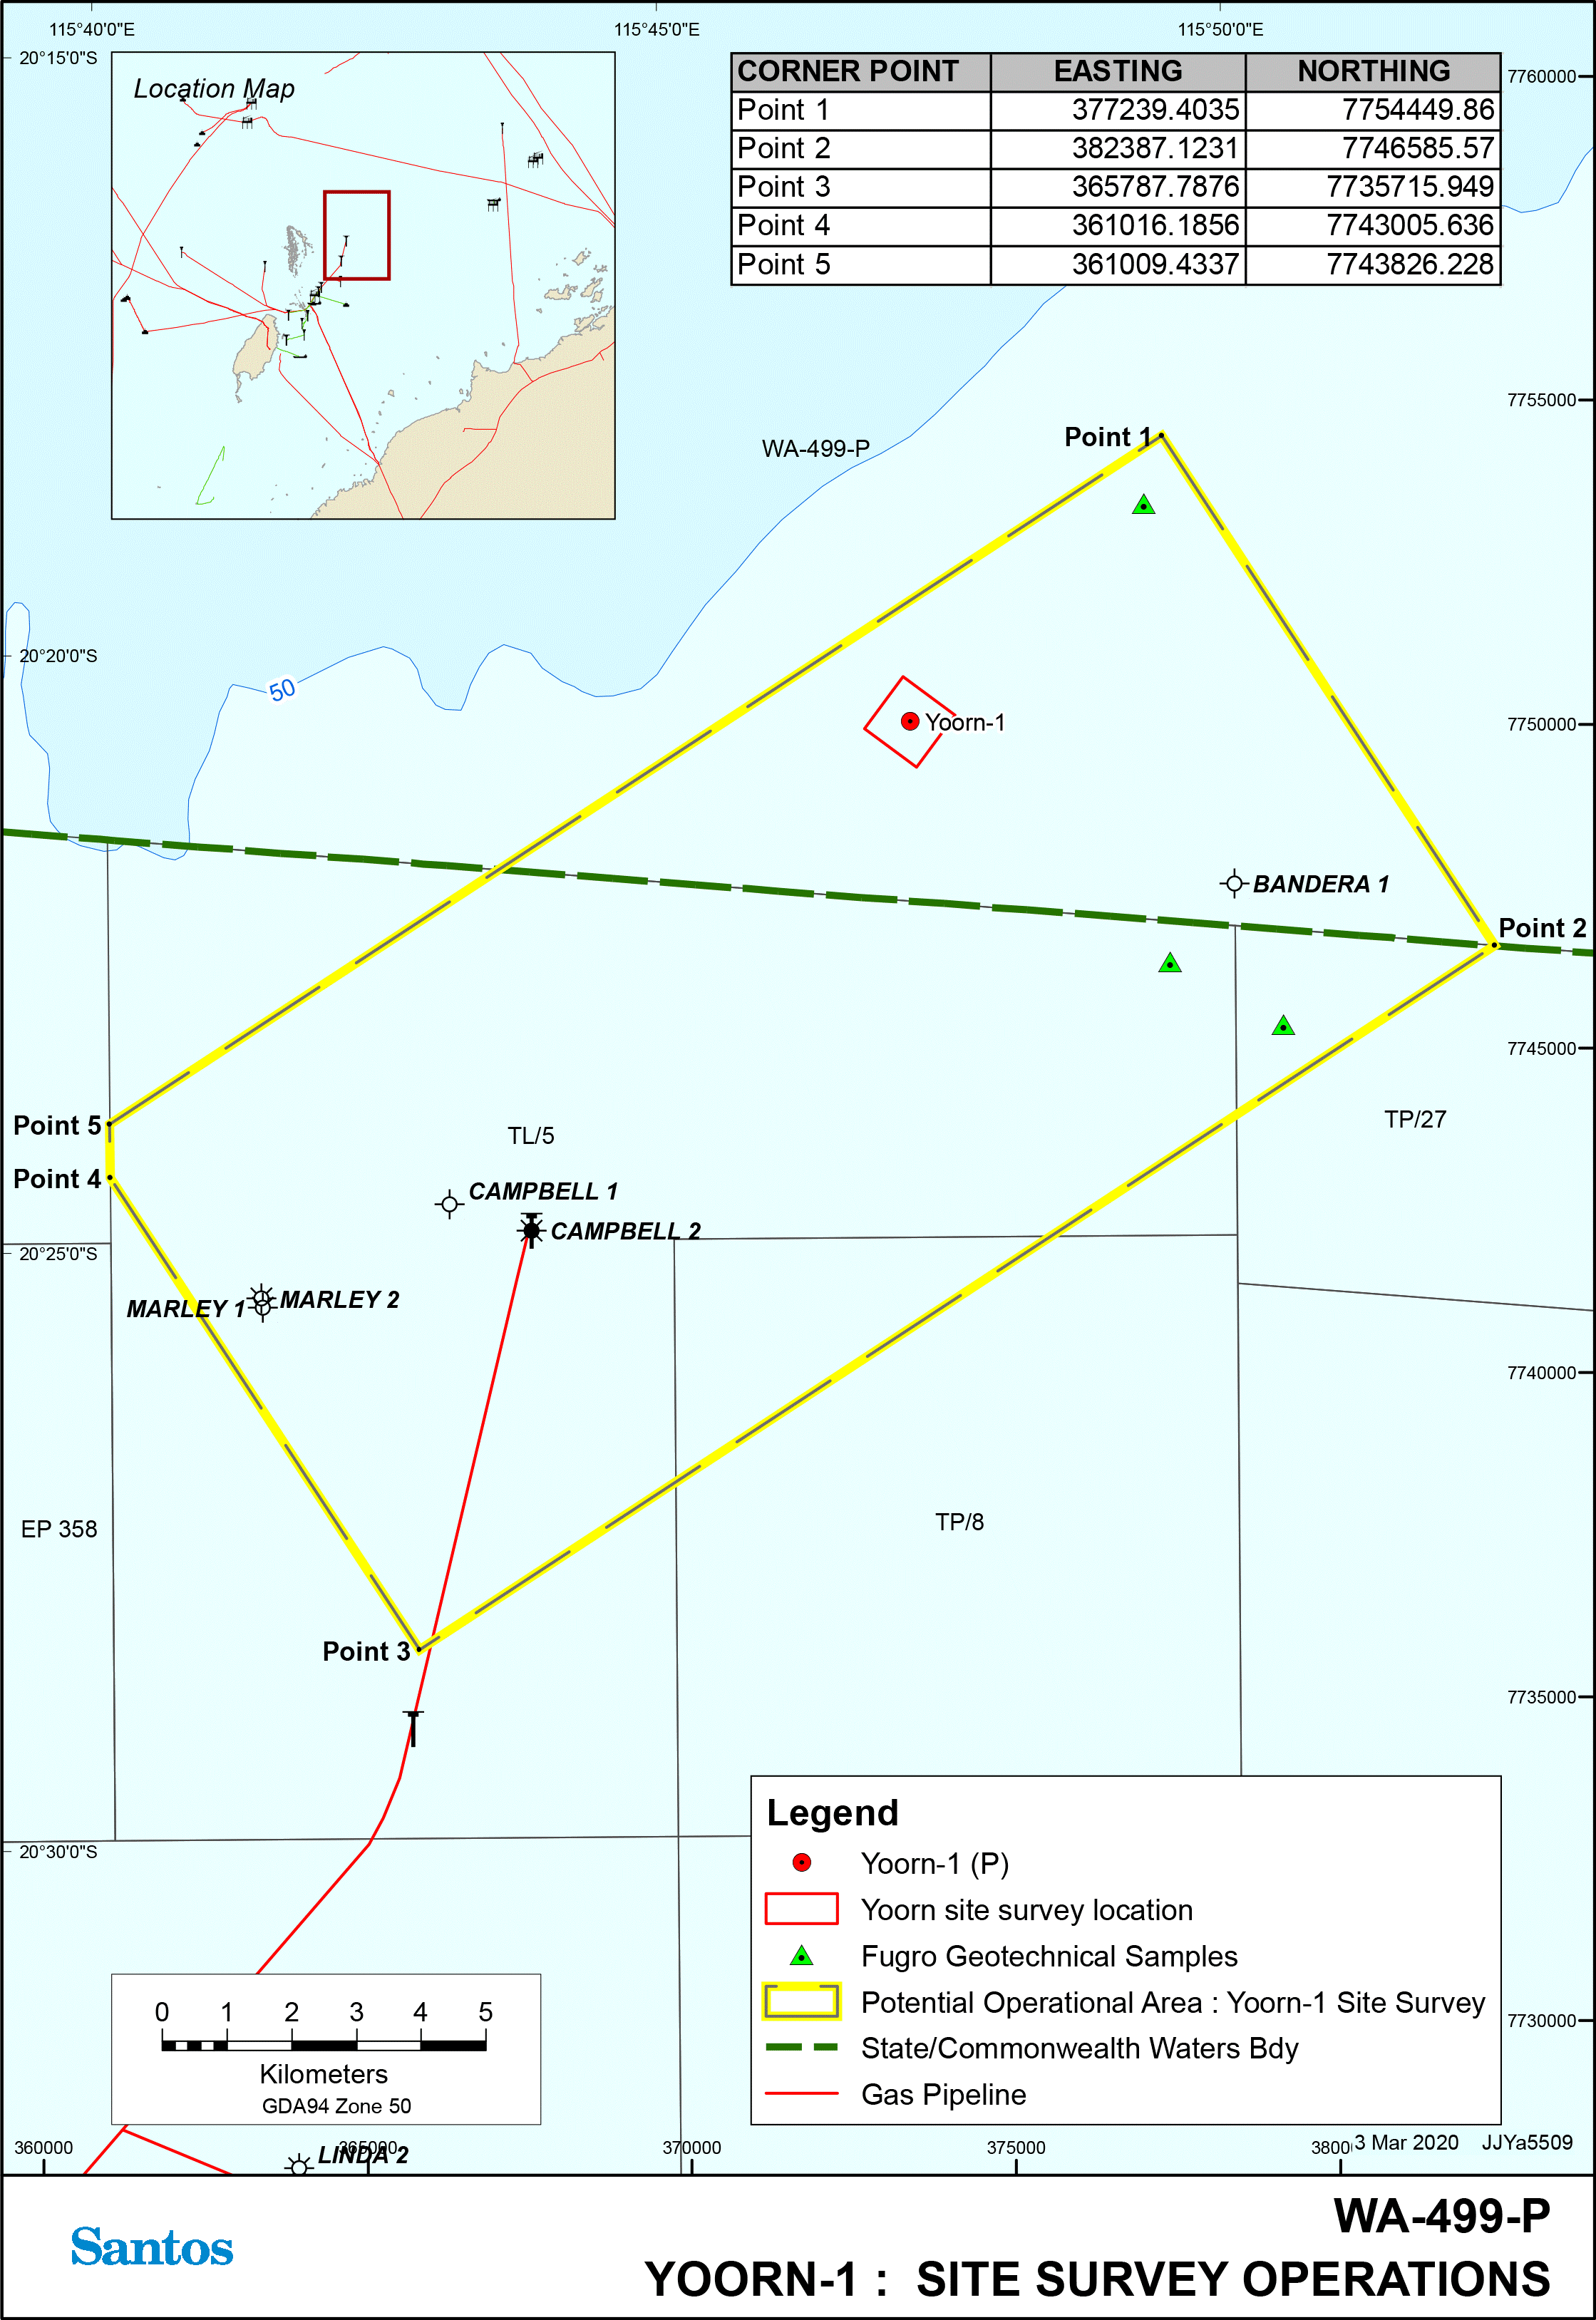 Location map - Activity: Yoorn-1 Geophysical Survey Environment Plan (State and Commonwealth Waters) (refer to description)